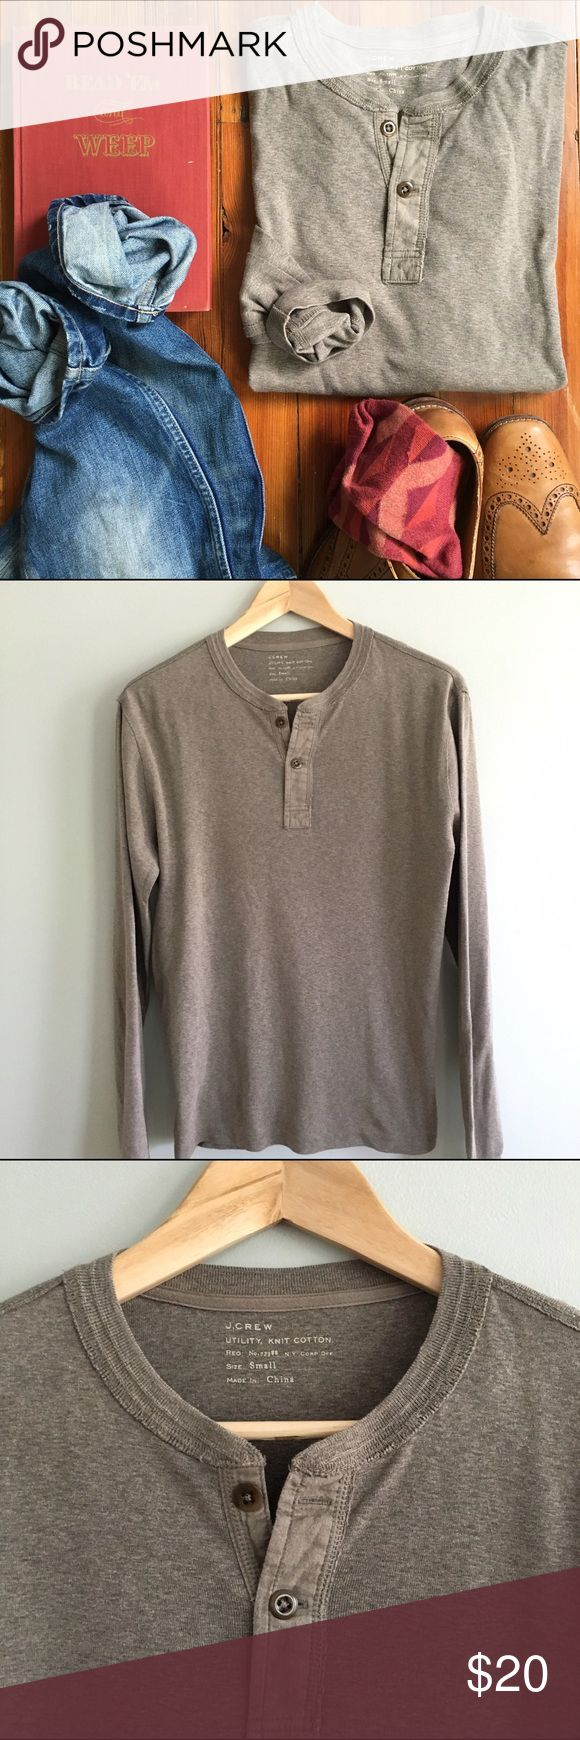 Men's JCREW Long Sleeve Henley in Warm Brown Cotton, Size Small, Good Condition J. Crew Tops